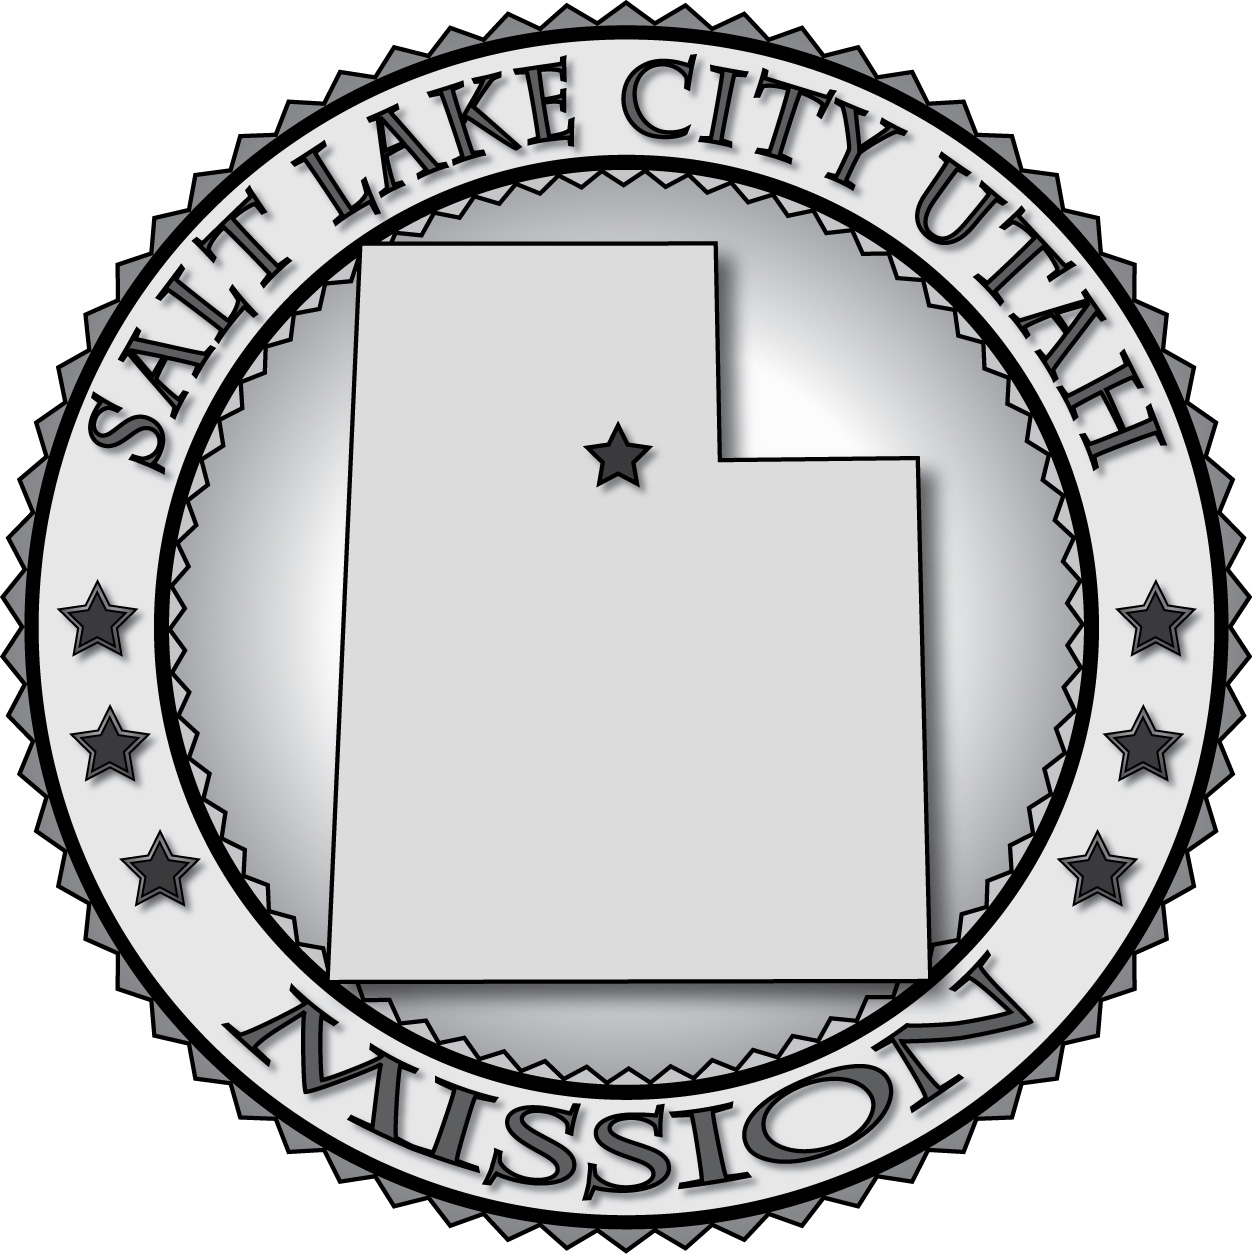 Utah – LDS Mission Medallions & Seals : My CTR Ring